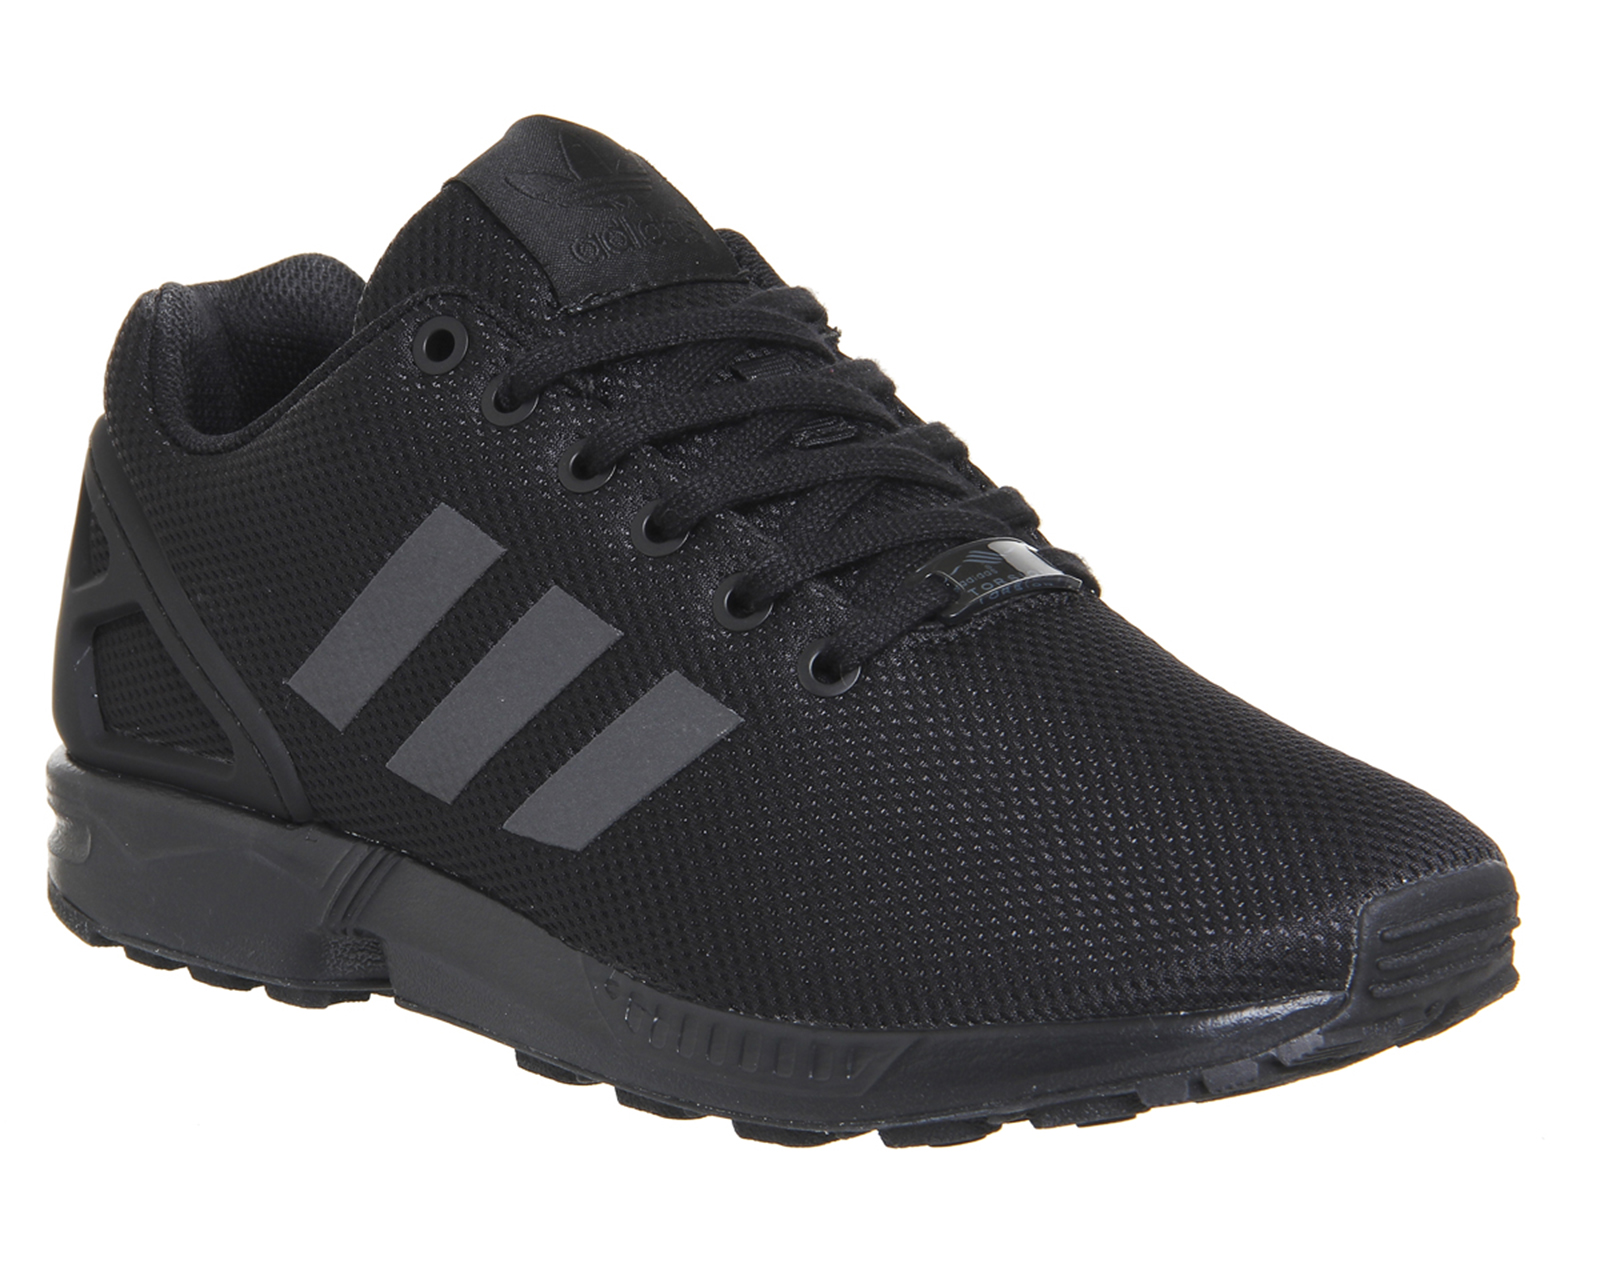 Mens Adidas Zx Flux BLACK Trainers Shoes | eBay